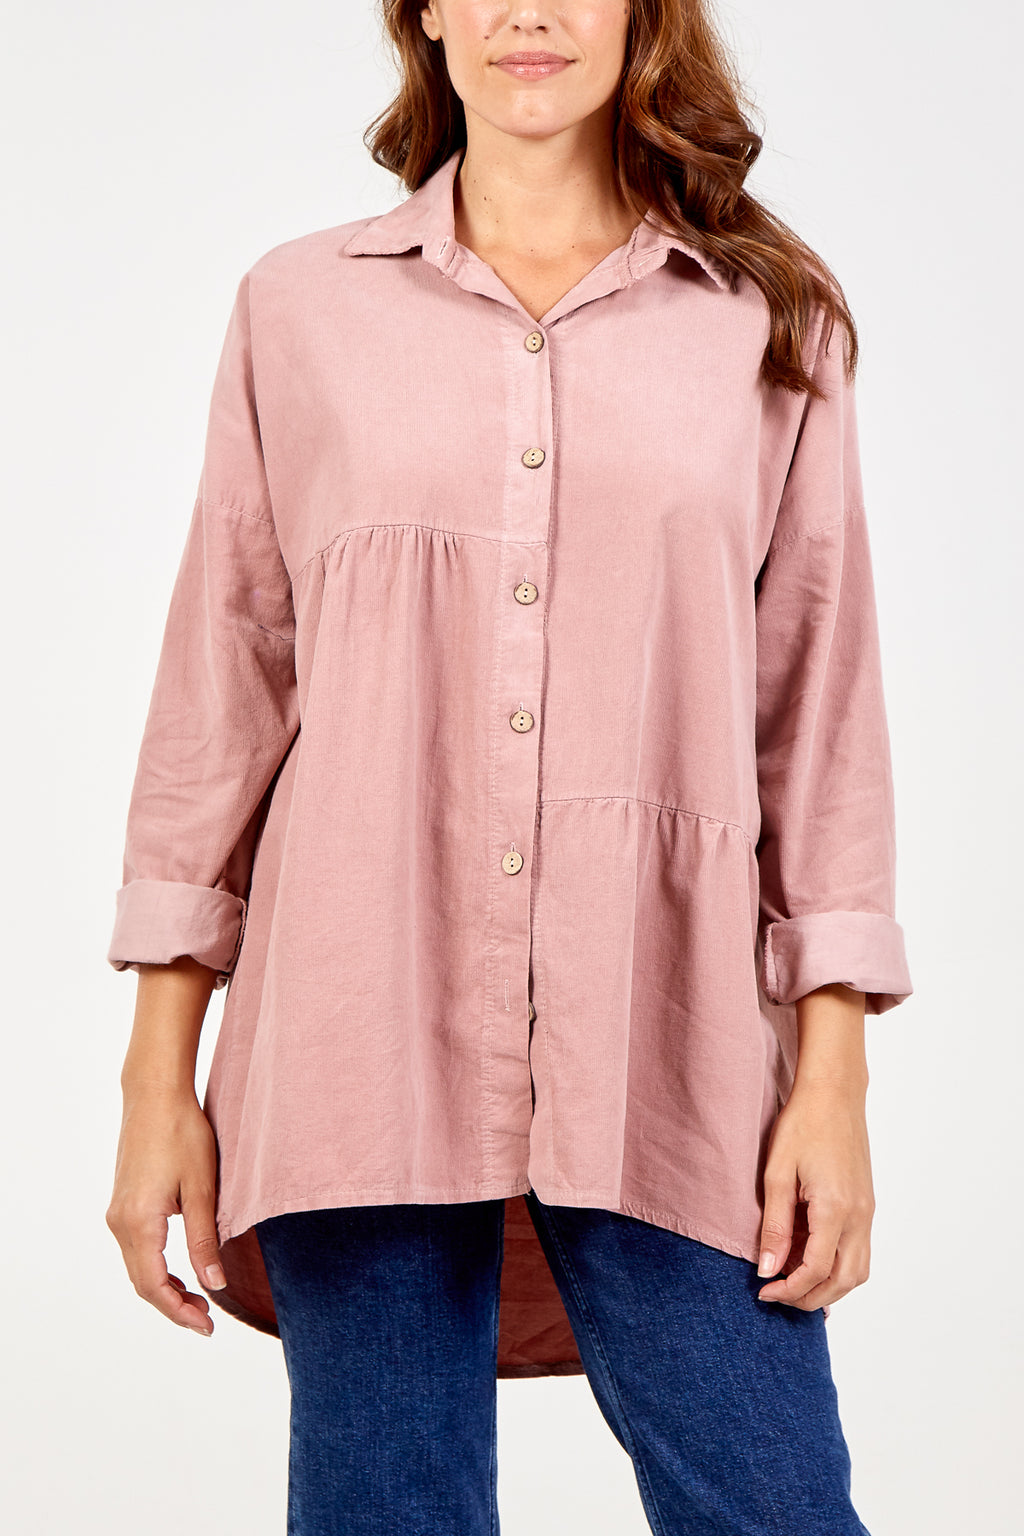 Baby Corduroy Collared Buttoned Long Sleeve Shirt